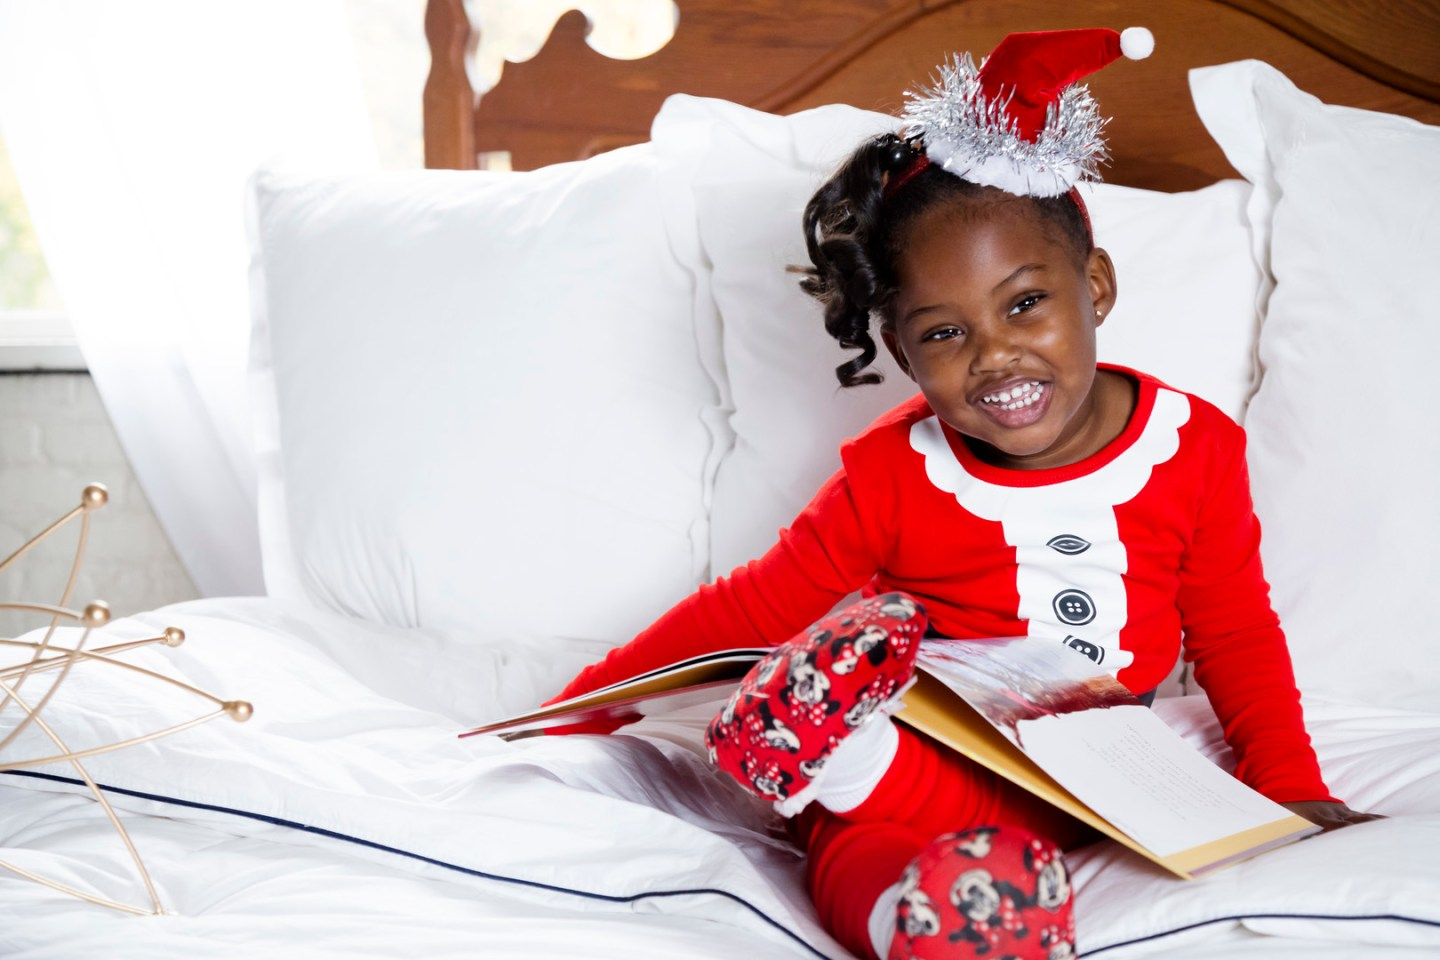 q8qwzwx54zf4nxah6m34_big Mommy & Me Christmas PJ Session in Greensboro, NC